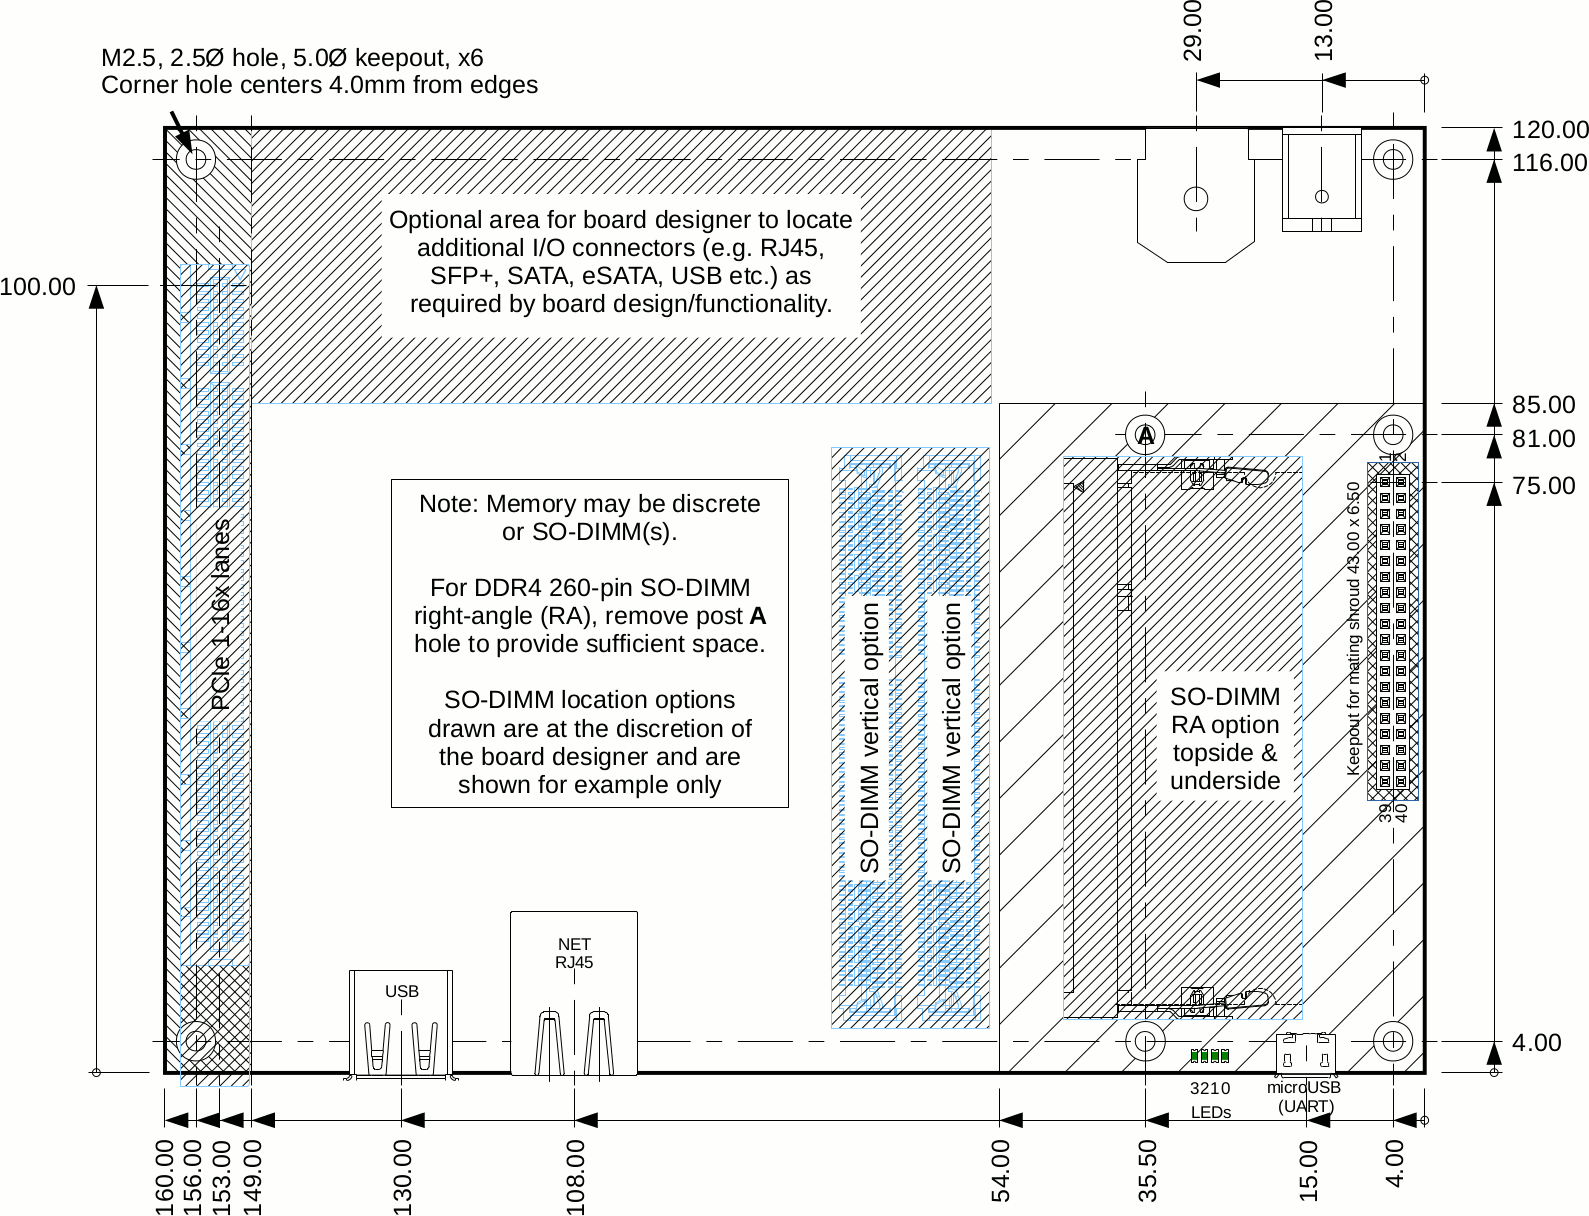 Board Drawings for Standard Version (Click to Enlarge)